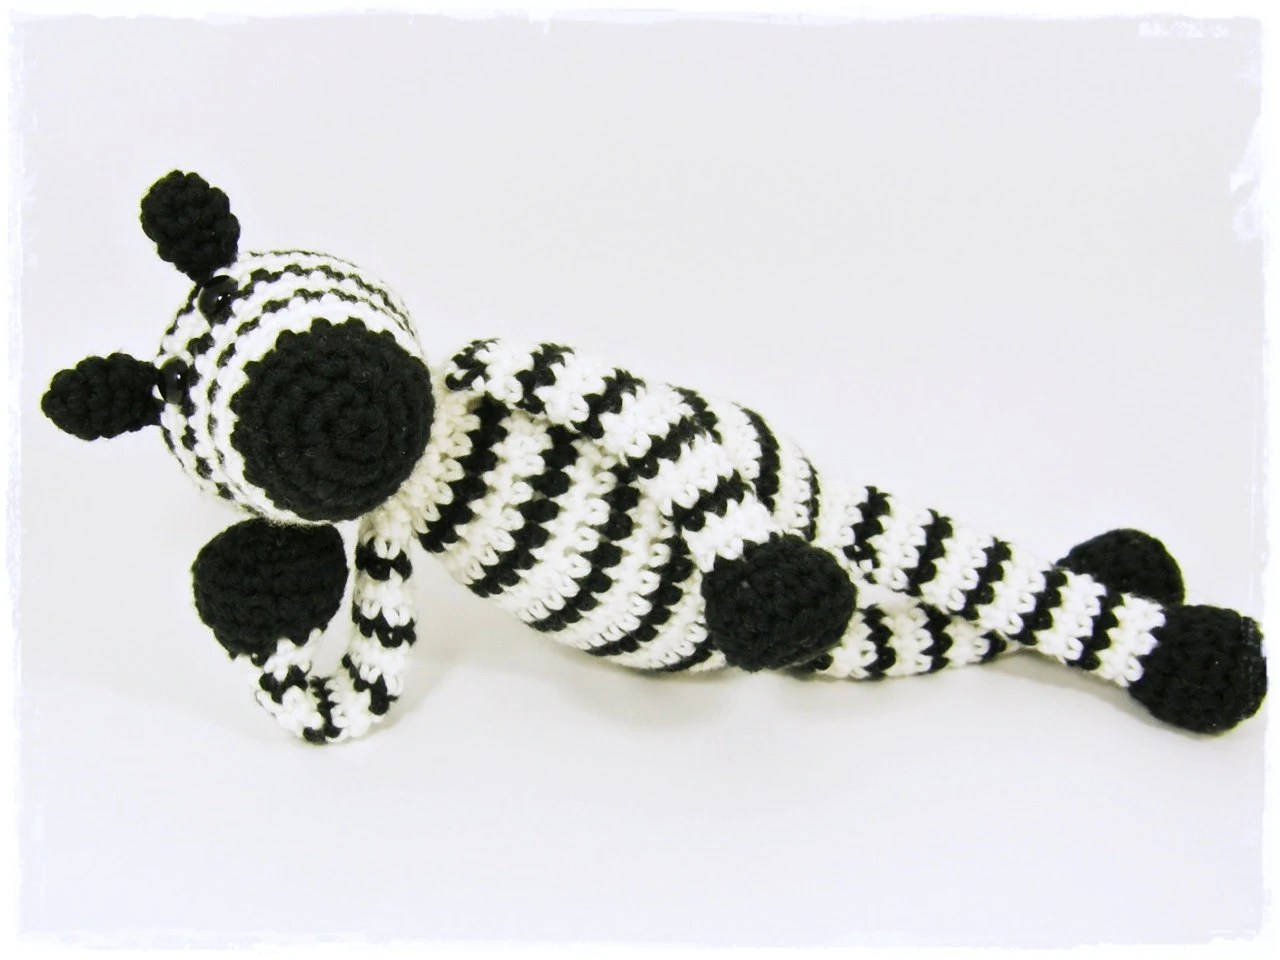 Crochet pattern amigurumi zebra baby toy pdf tutorial in US